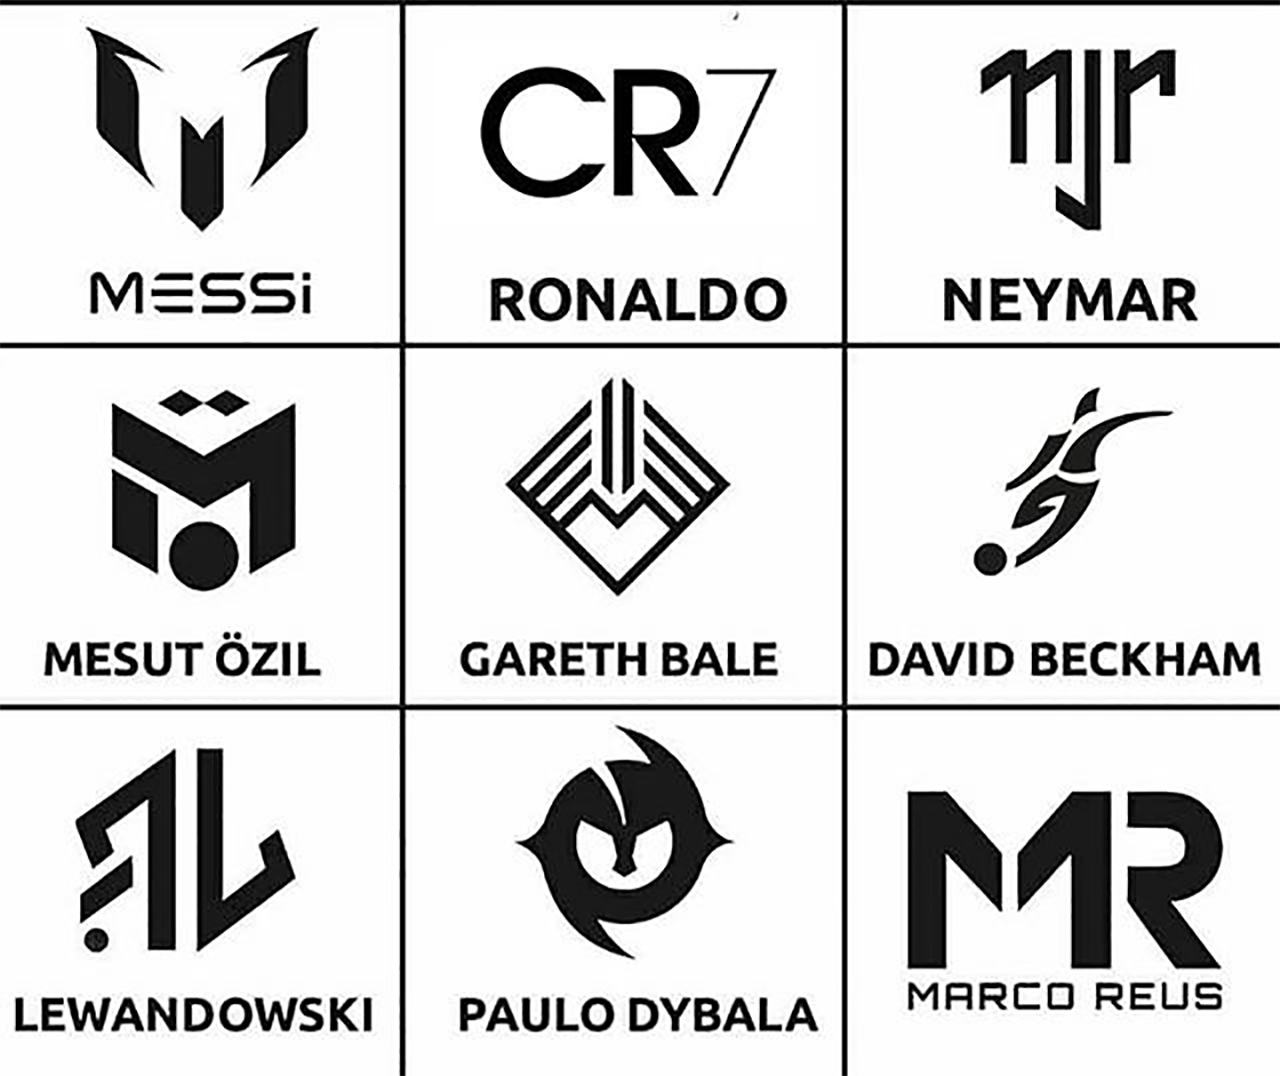 Today's Soccer Superstar Players Have Logos Too